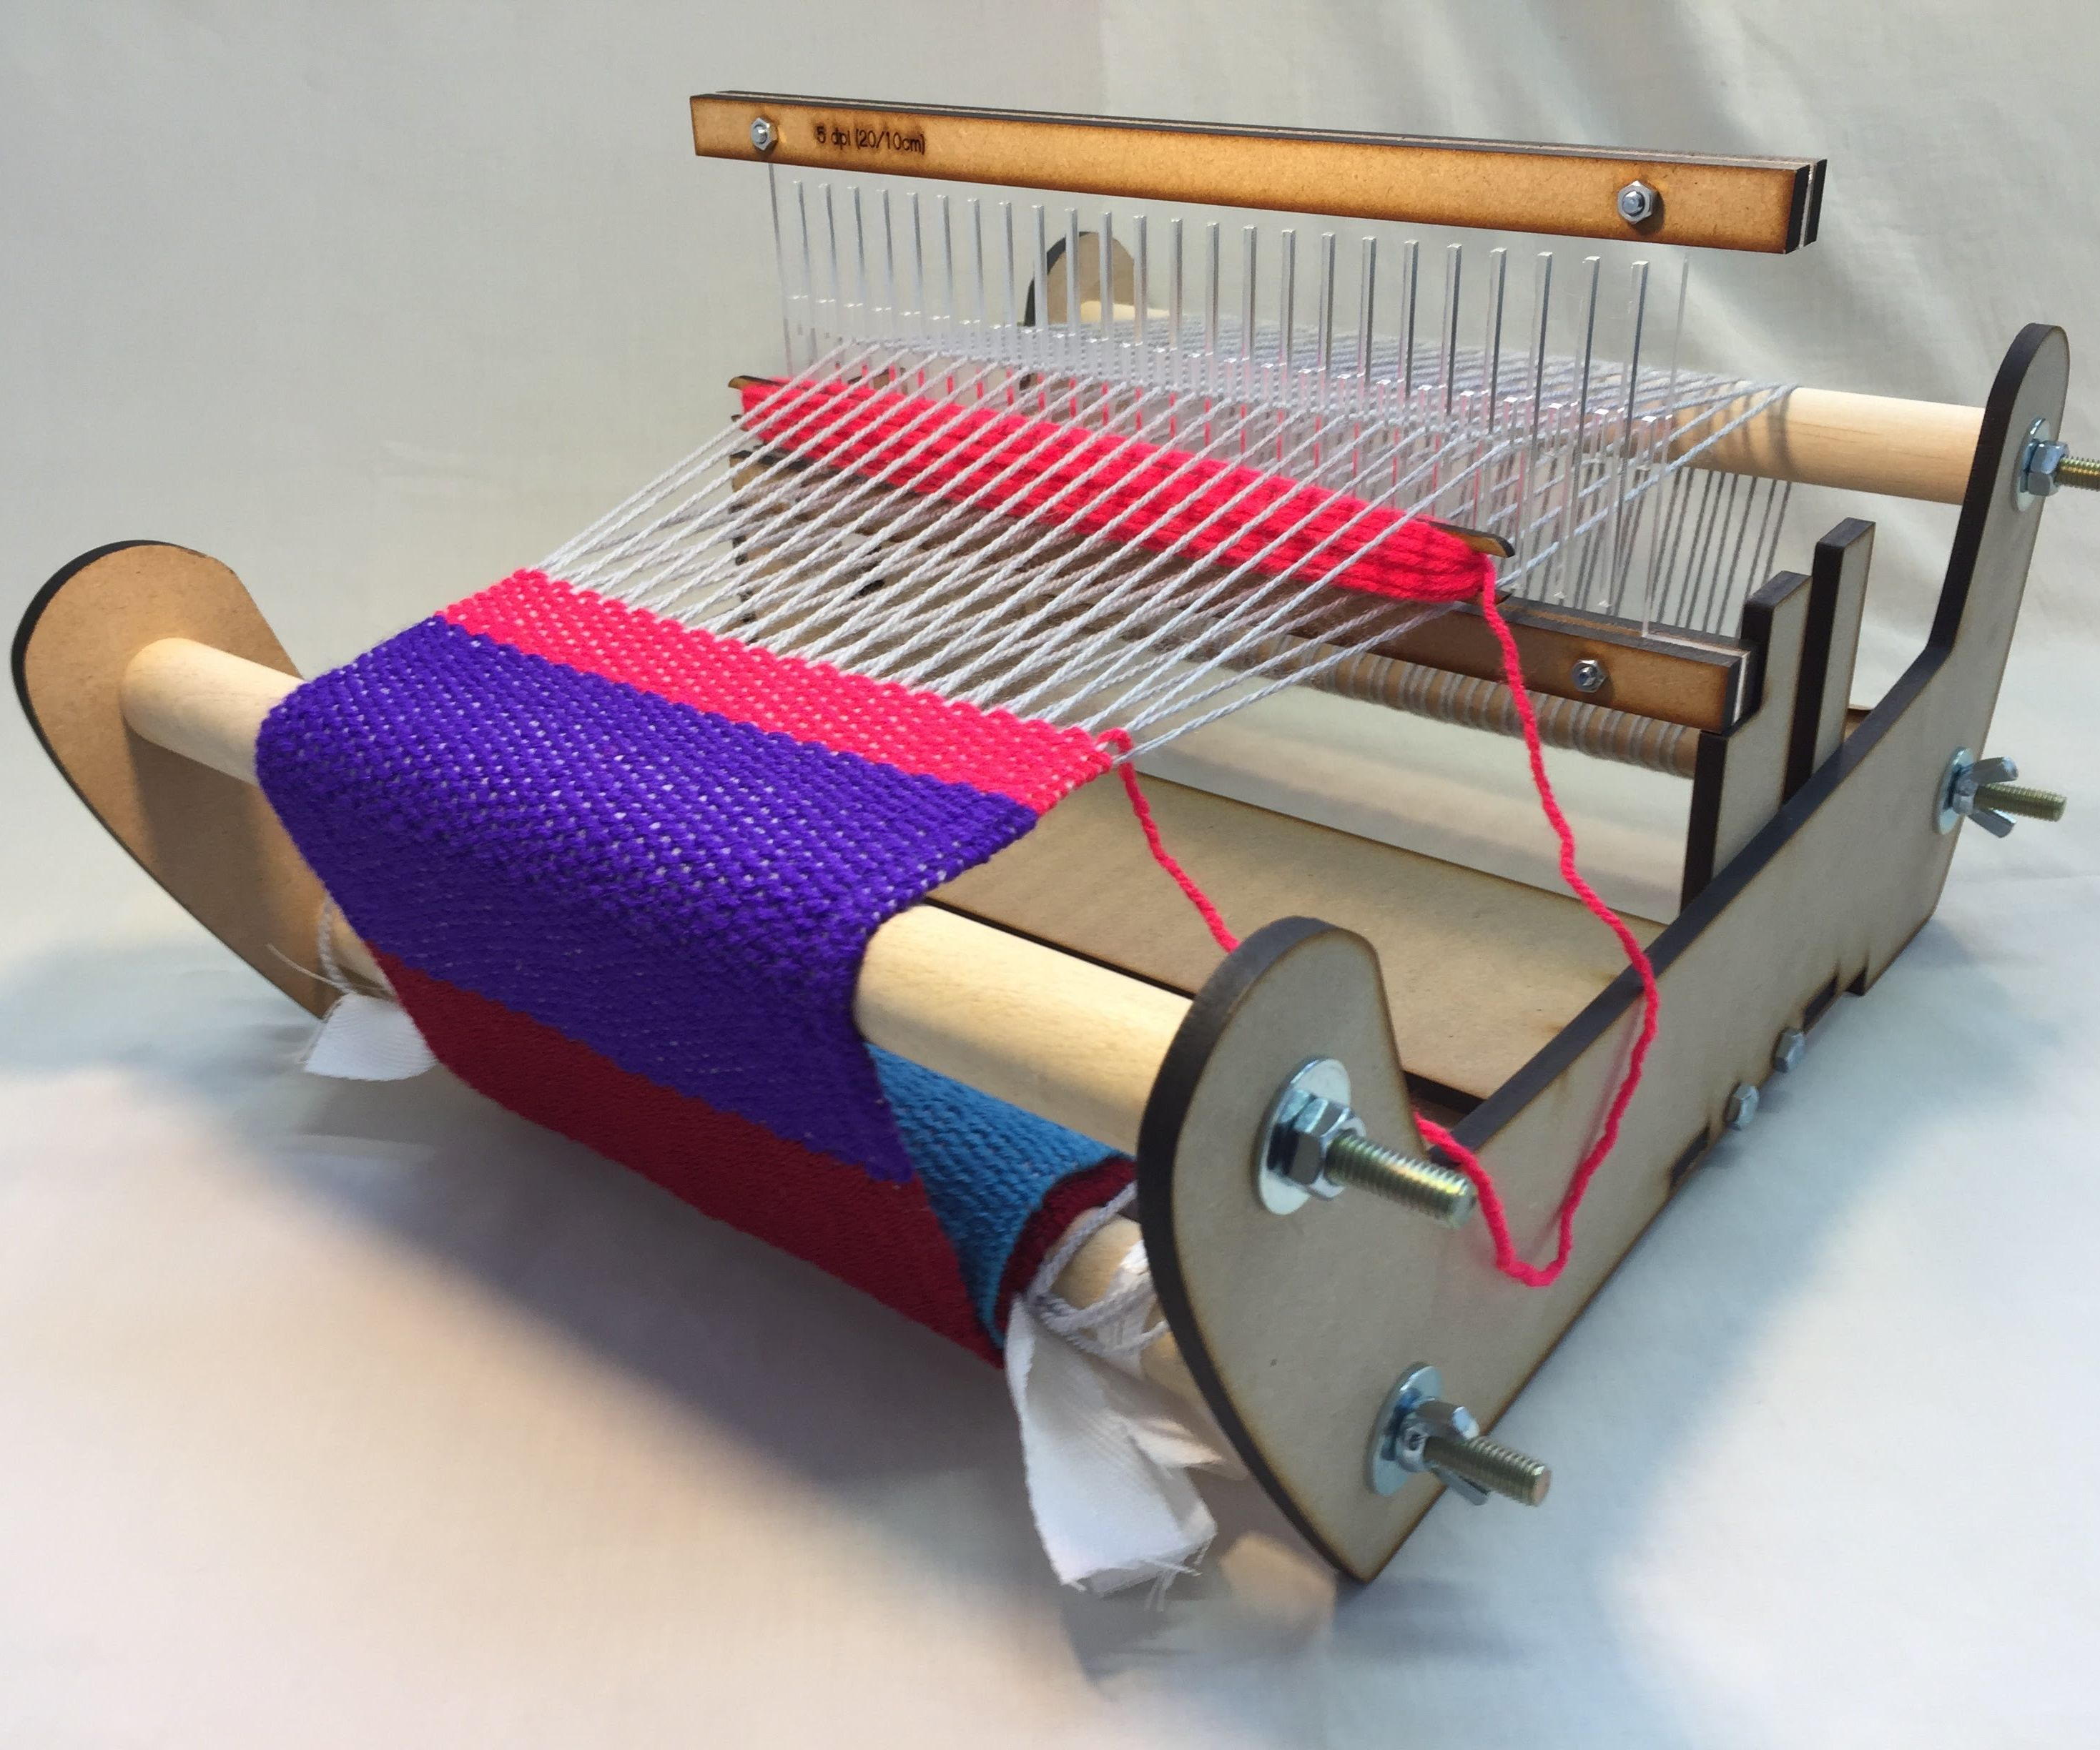 DIY Laser Cut Rigid Heddle Loom - Part 2: Weaving With the Rigid Heddle Loom